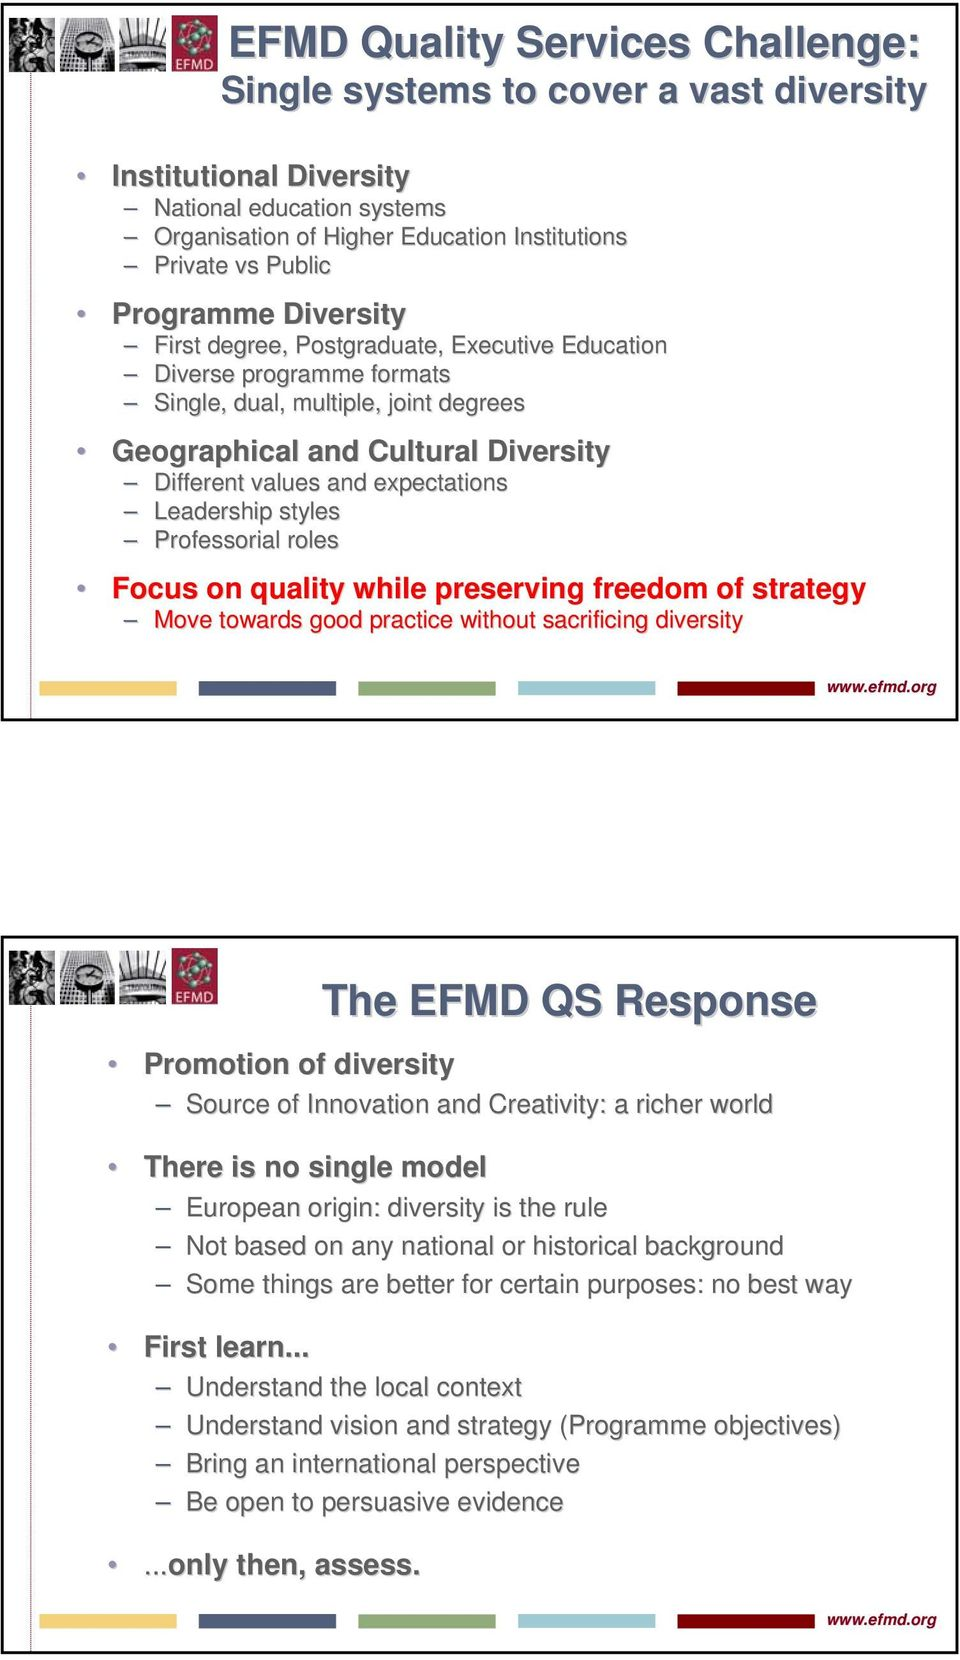 Leadership styles Professorial roles Focus on quality while preserving freedom of strategy Move towards good practice without sacrificing diversity The EFMD QS Response Promotion of diversity Source